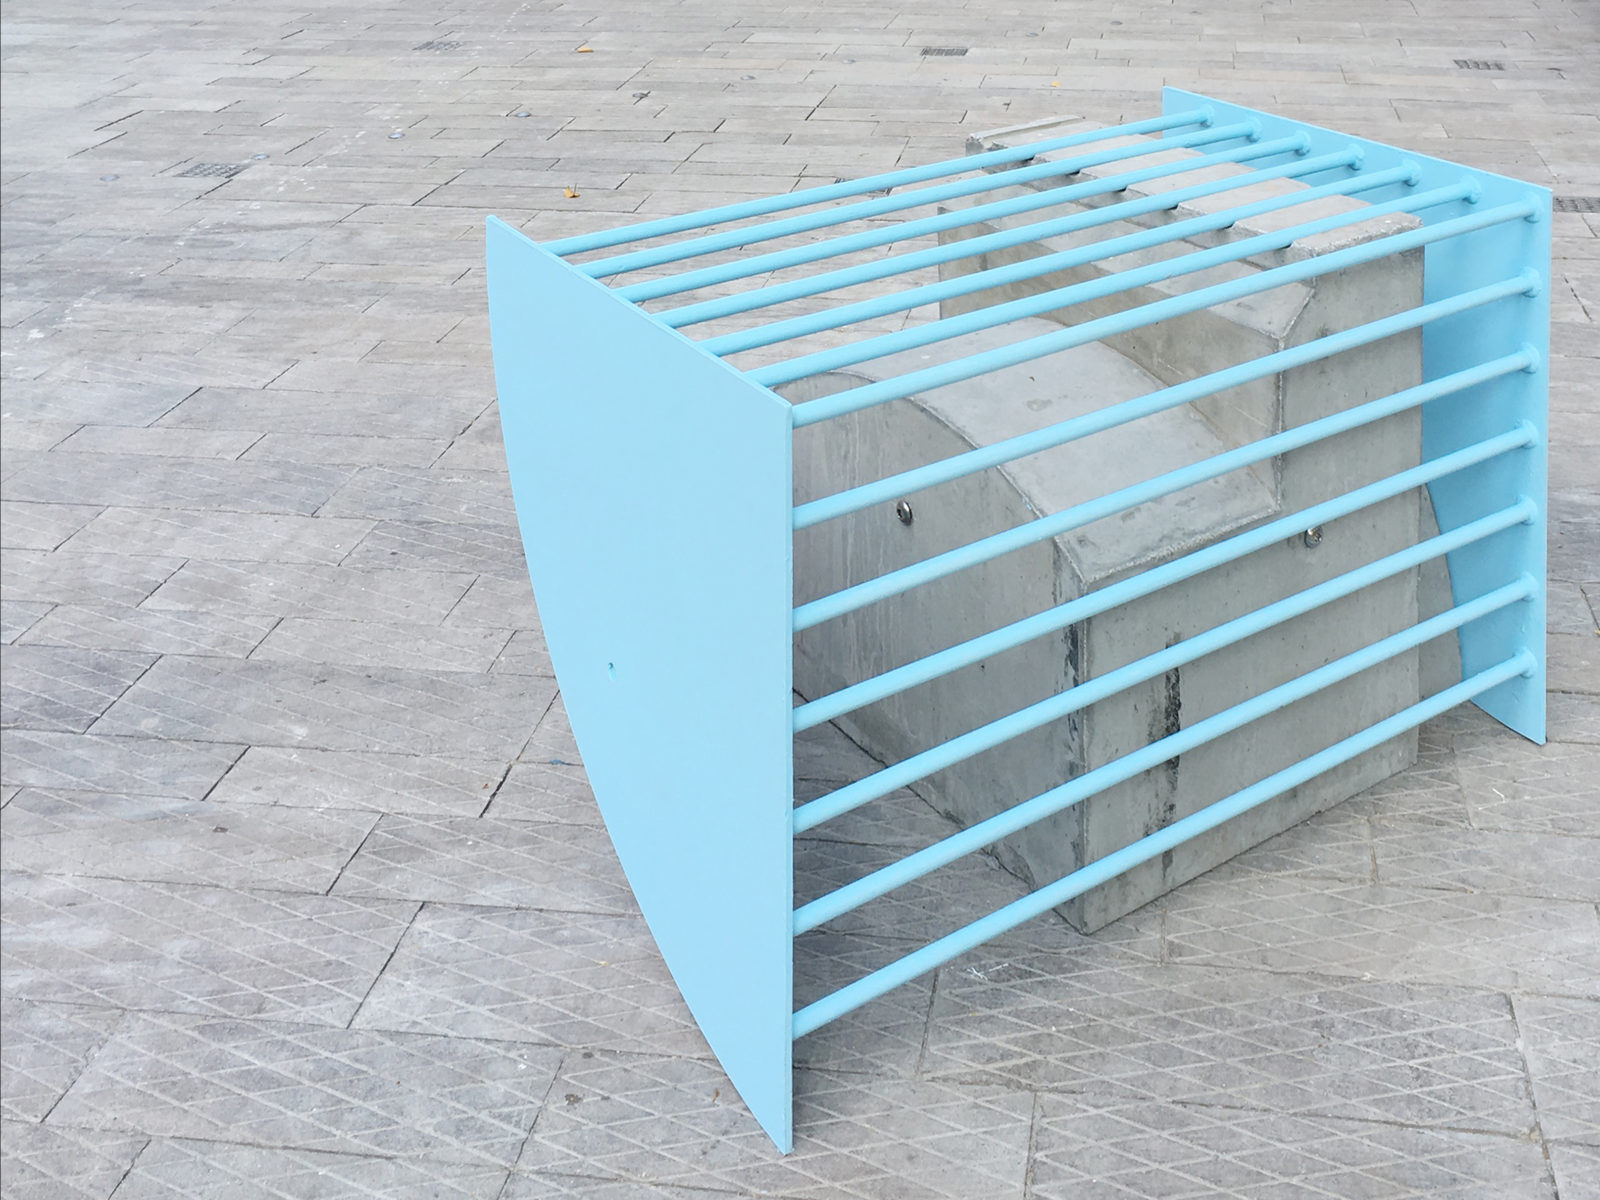 Nadim Abbas, P-SCAPE, 2018. Public sculpture in steel and concrete. Dimensions variable. Installation view. Tai Kwun Contemporary, Hong Kong, CN.